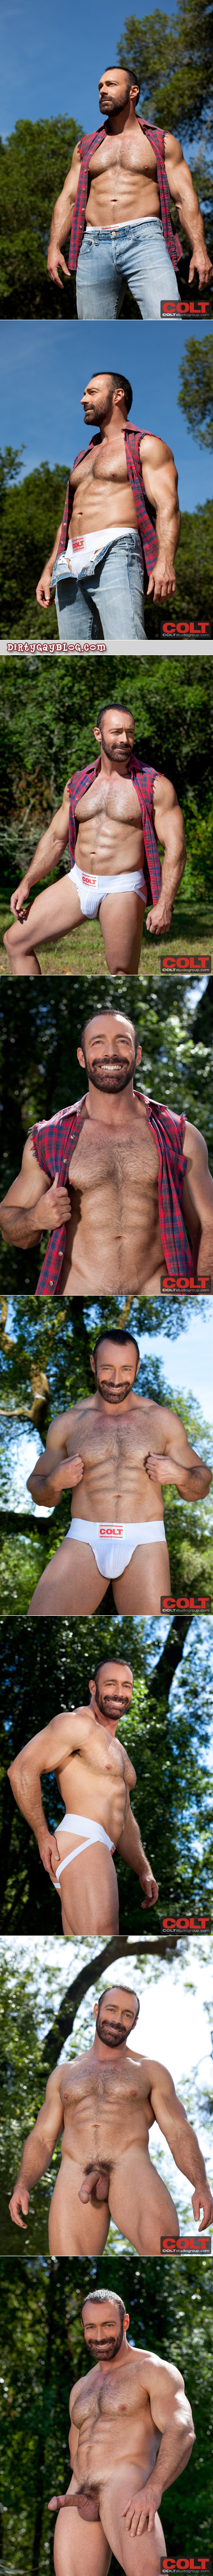 Beefy, masculine lumberjack in a jockstrap and a bikini swimsuit strips naked, gets hard and jacks off to an enormous cumshot.